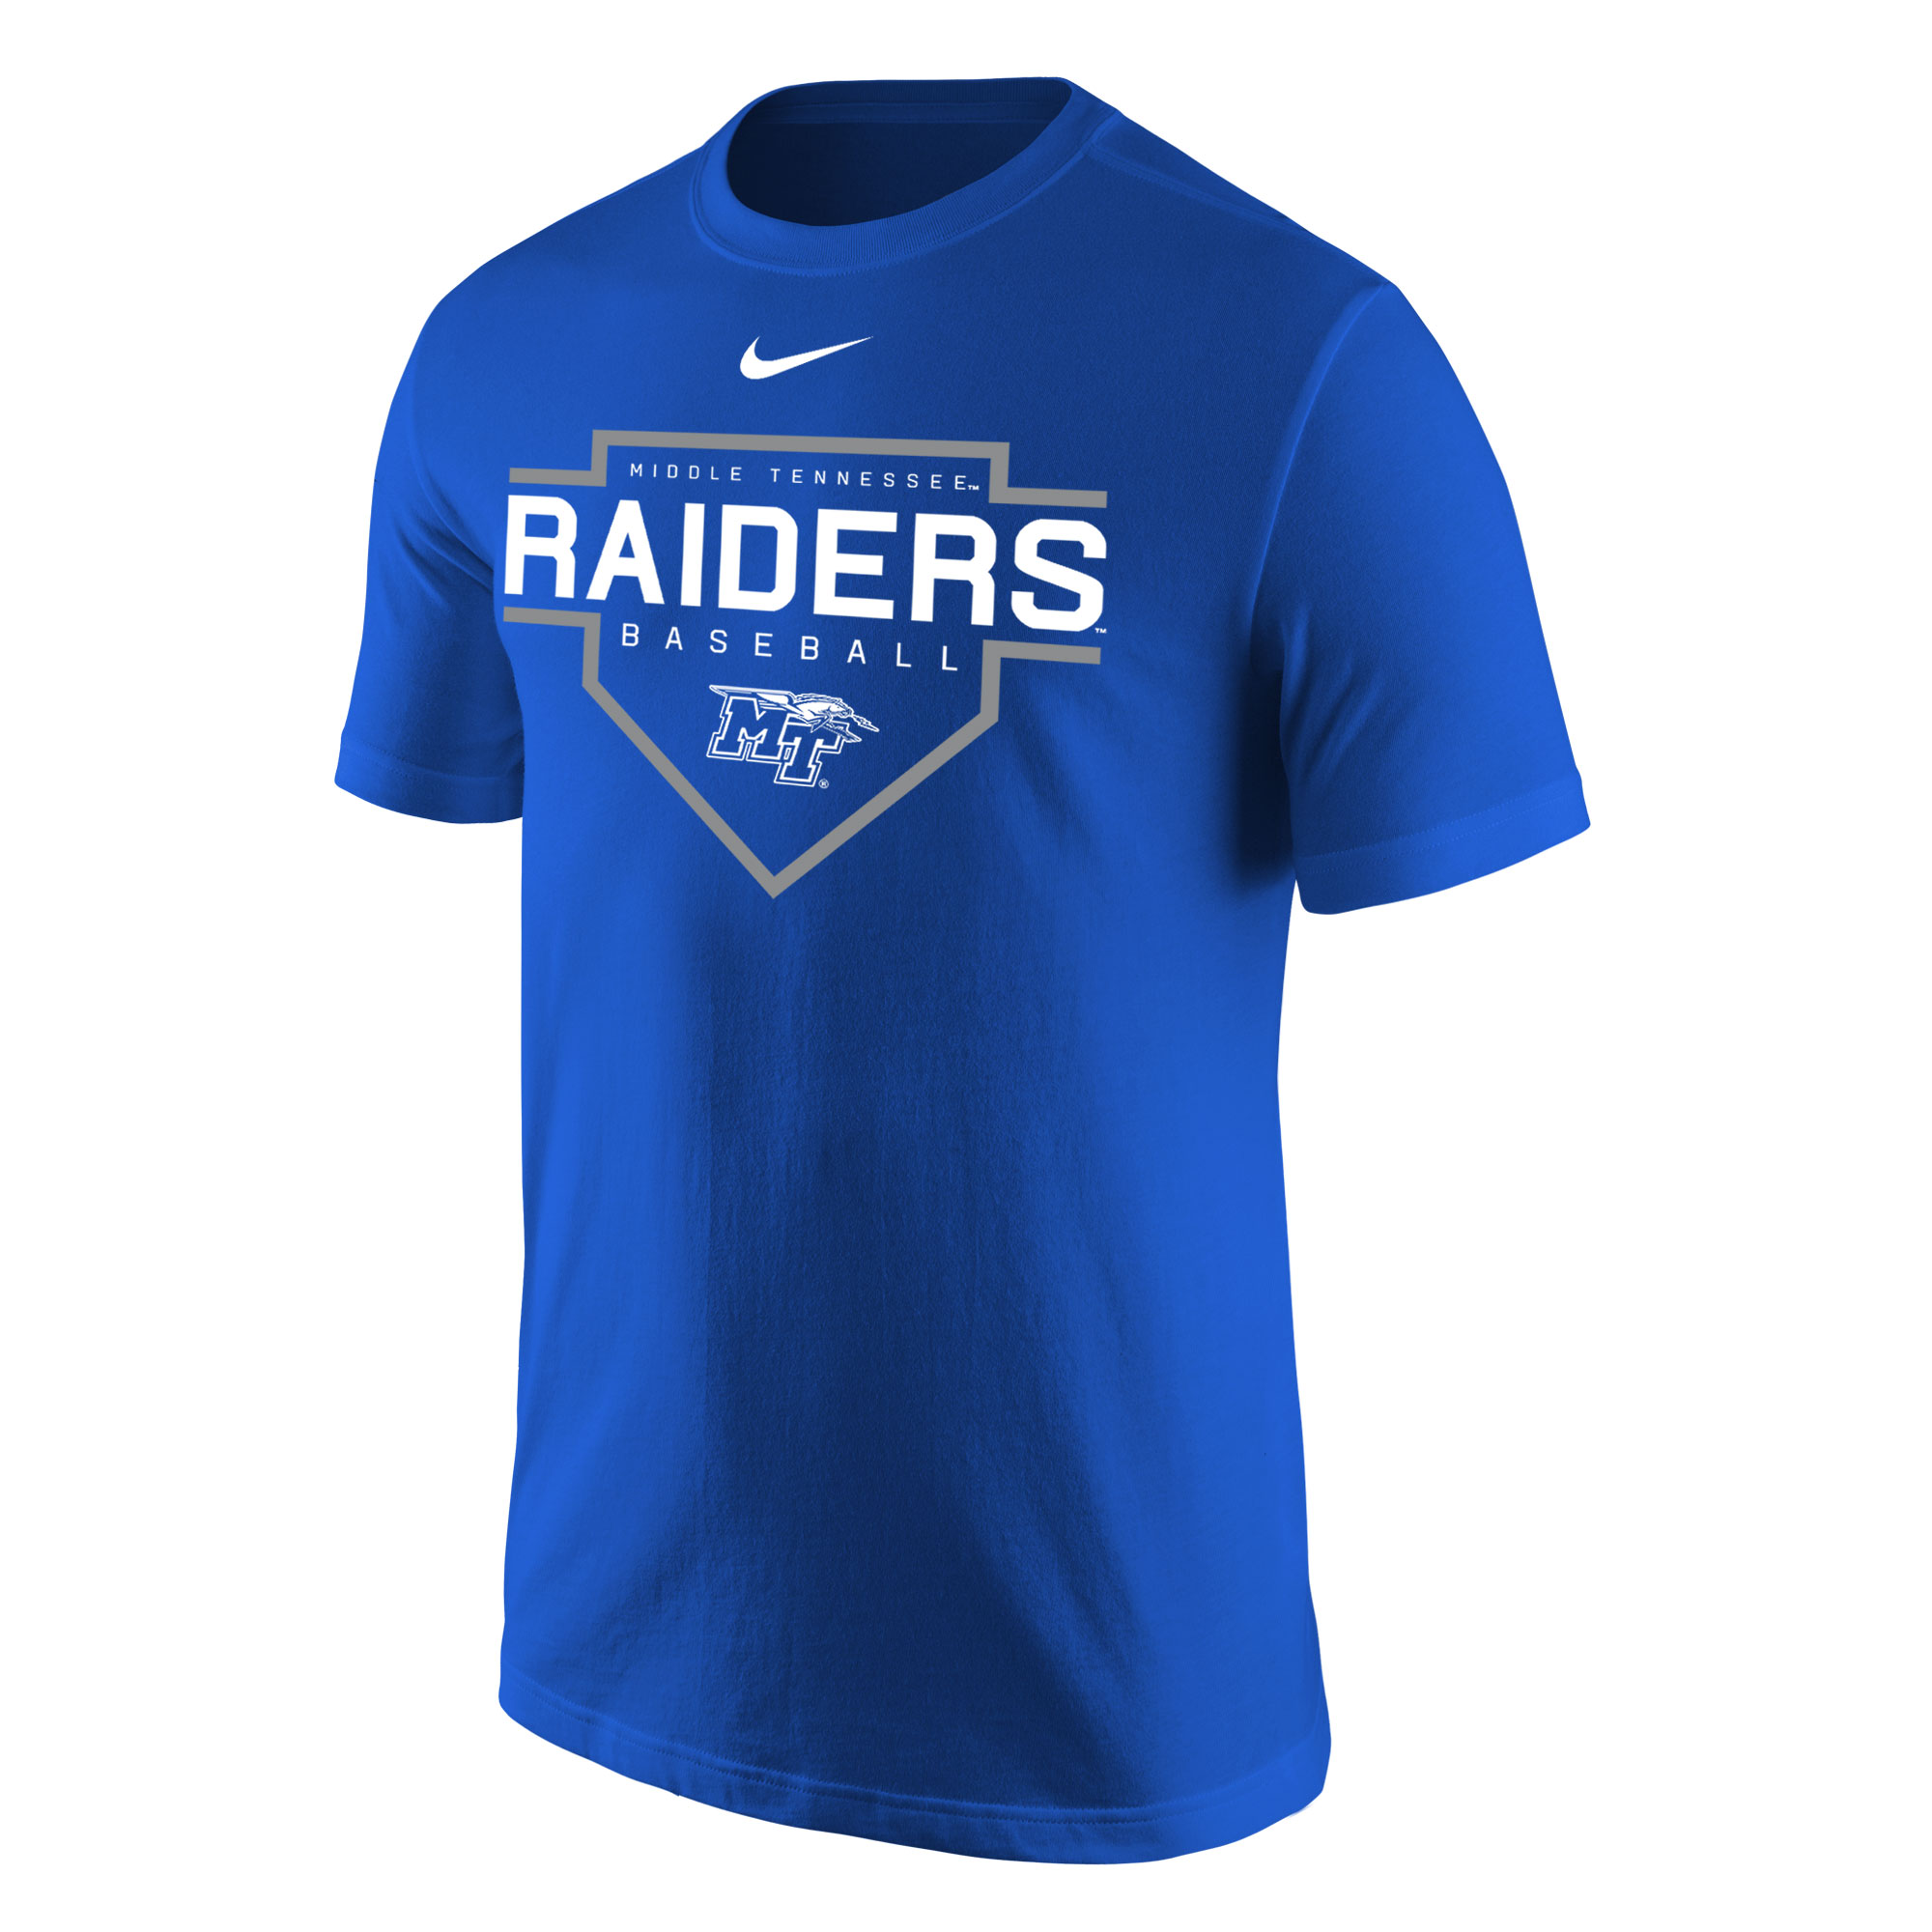 Middle Tennessee Raiders Baseball Nike® Core Shirt